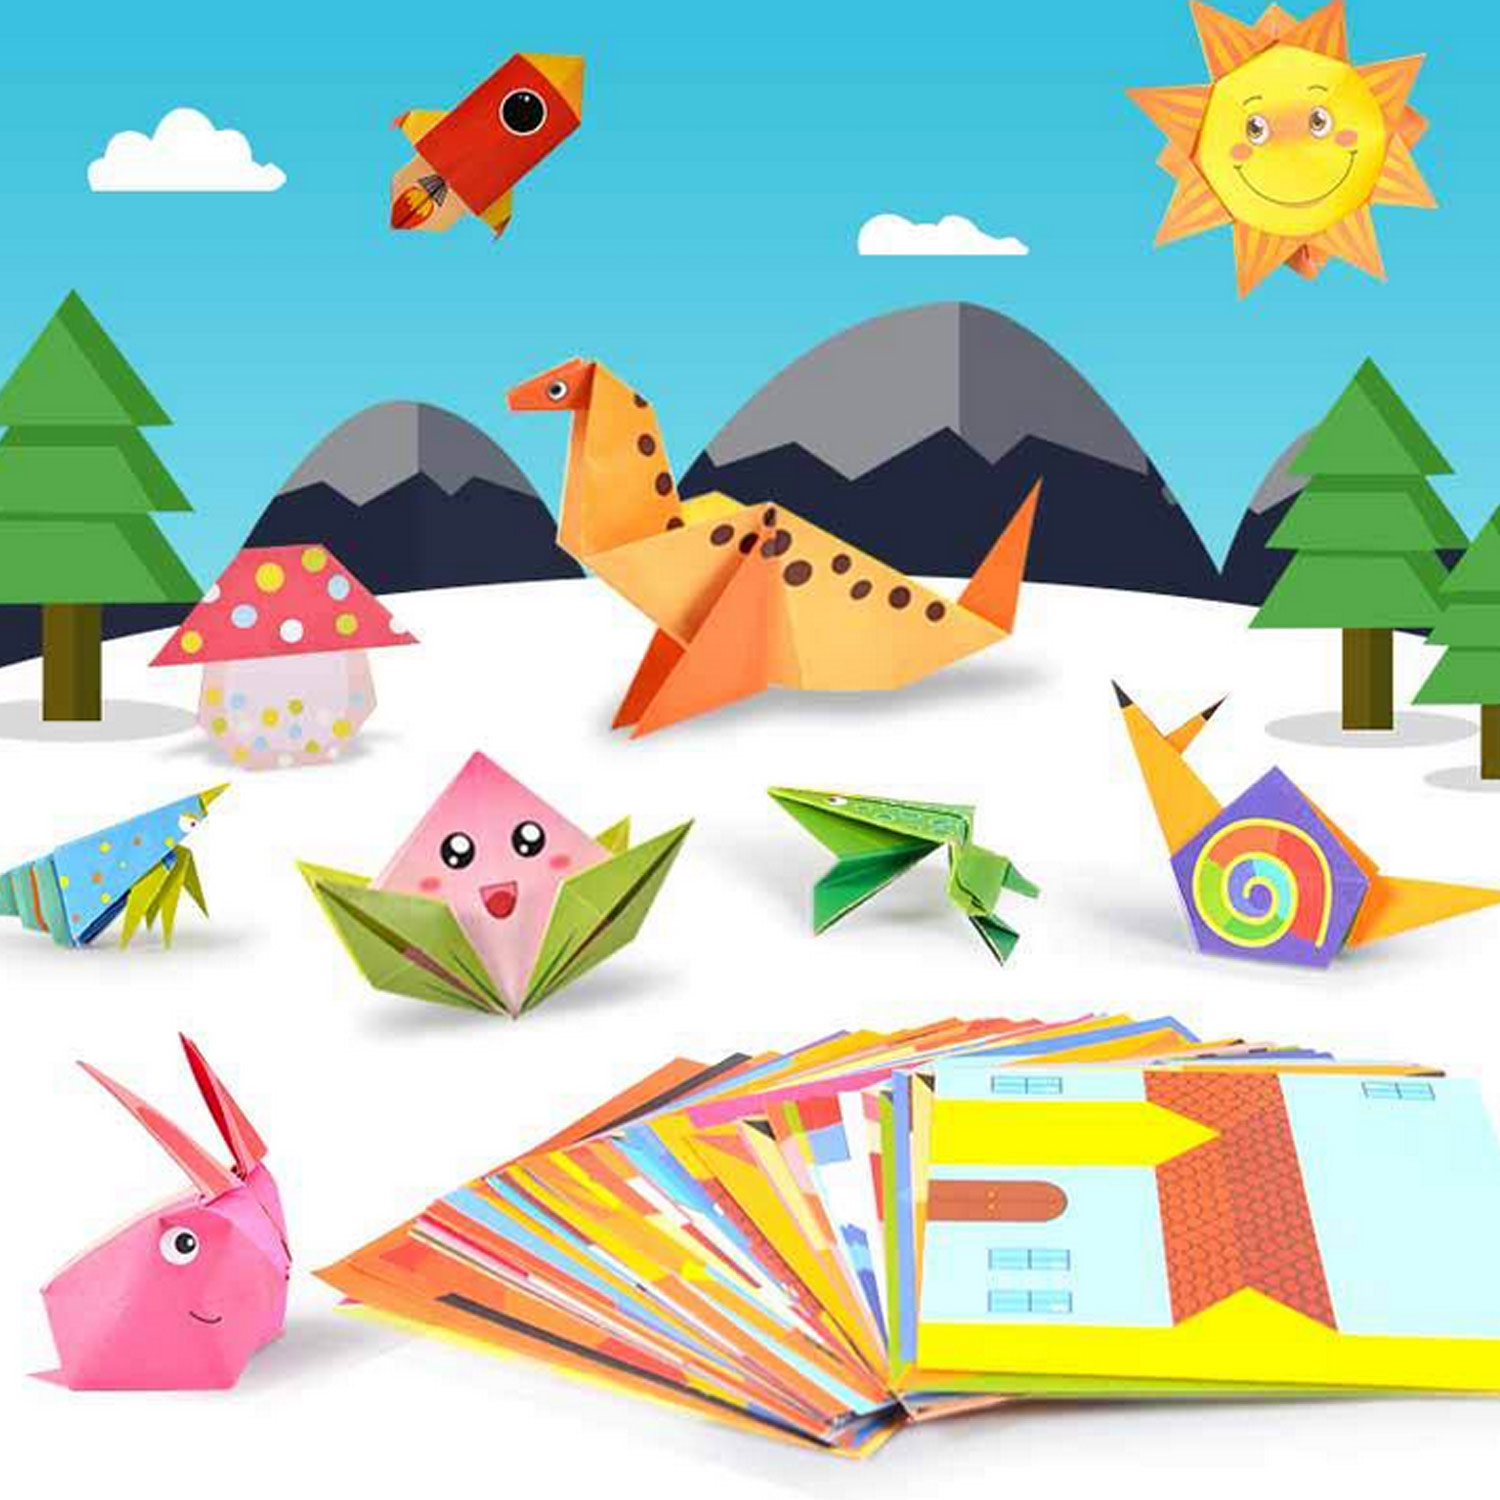 54 Sheets 3D Kids Origami Cartoon Animal Book Folding Paper for Children DIY Crafts Paper Art Projects Early Educational Toys